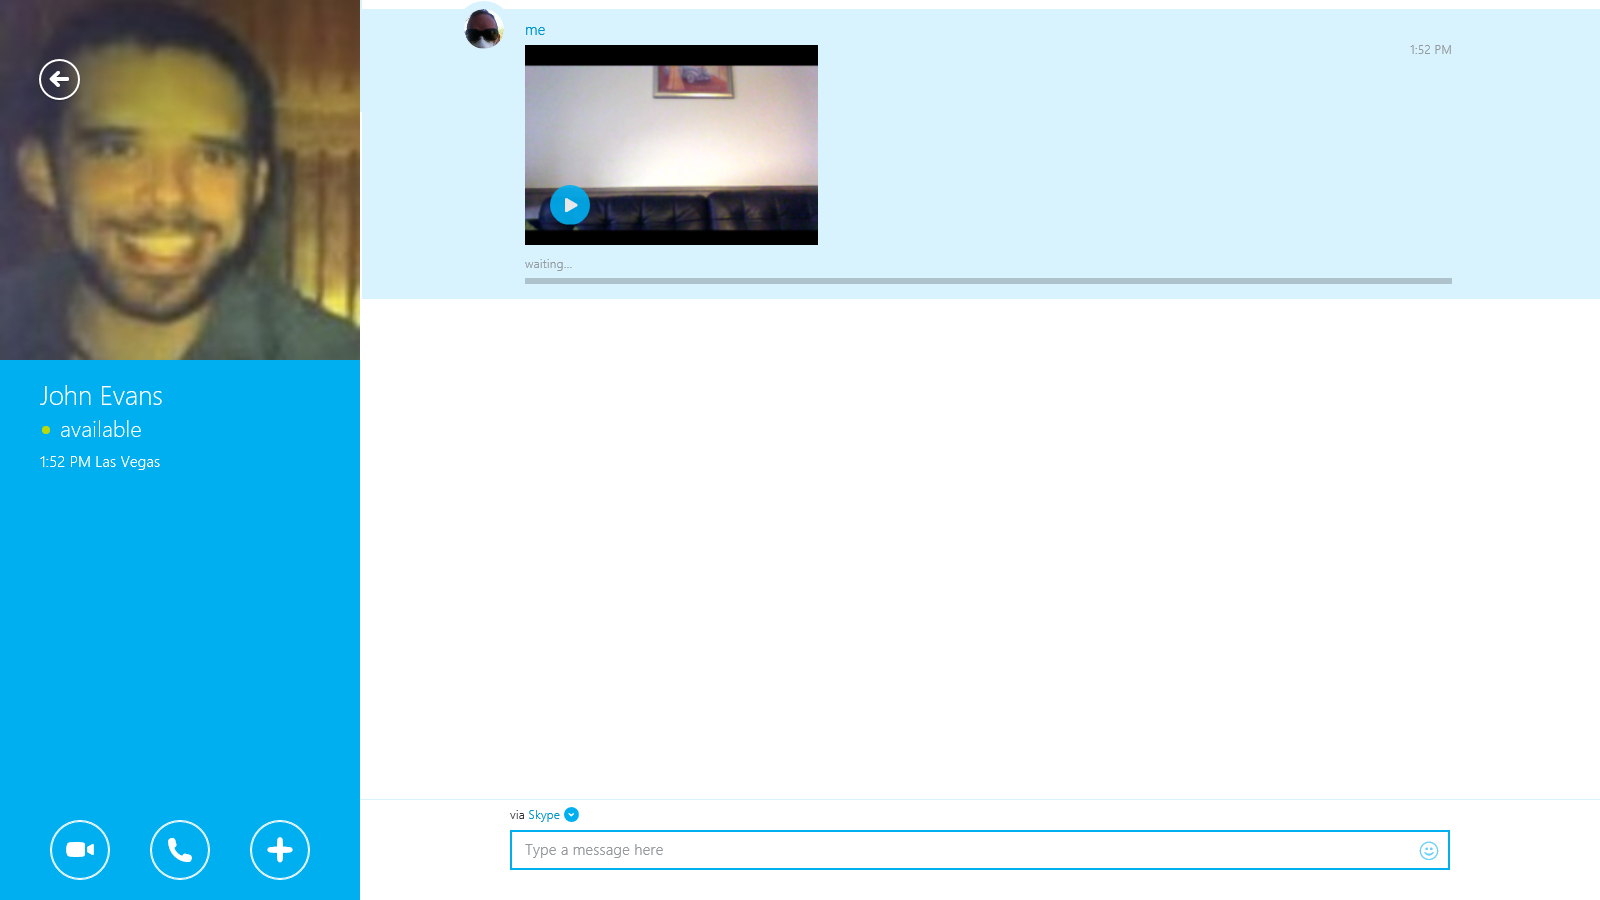 The video message displayed in the conversation window.